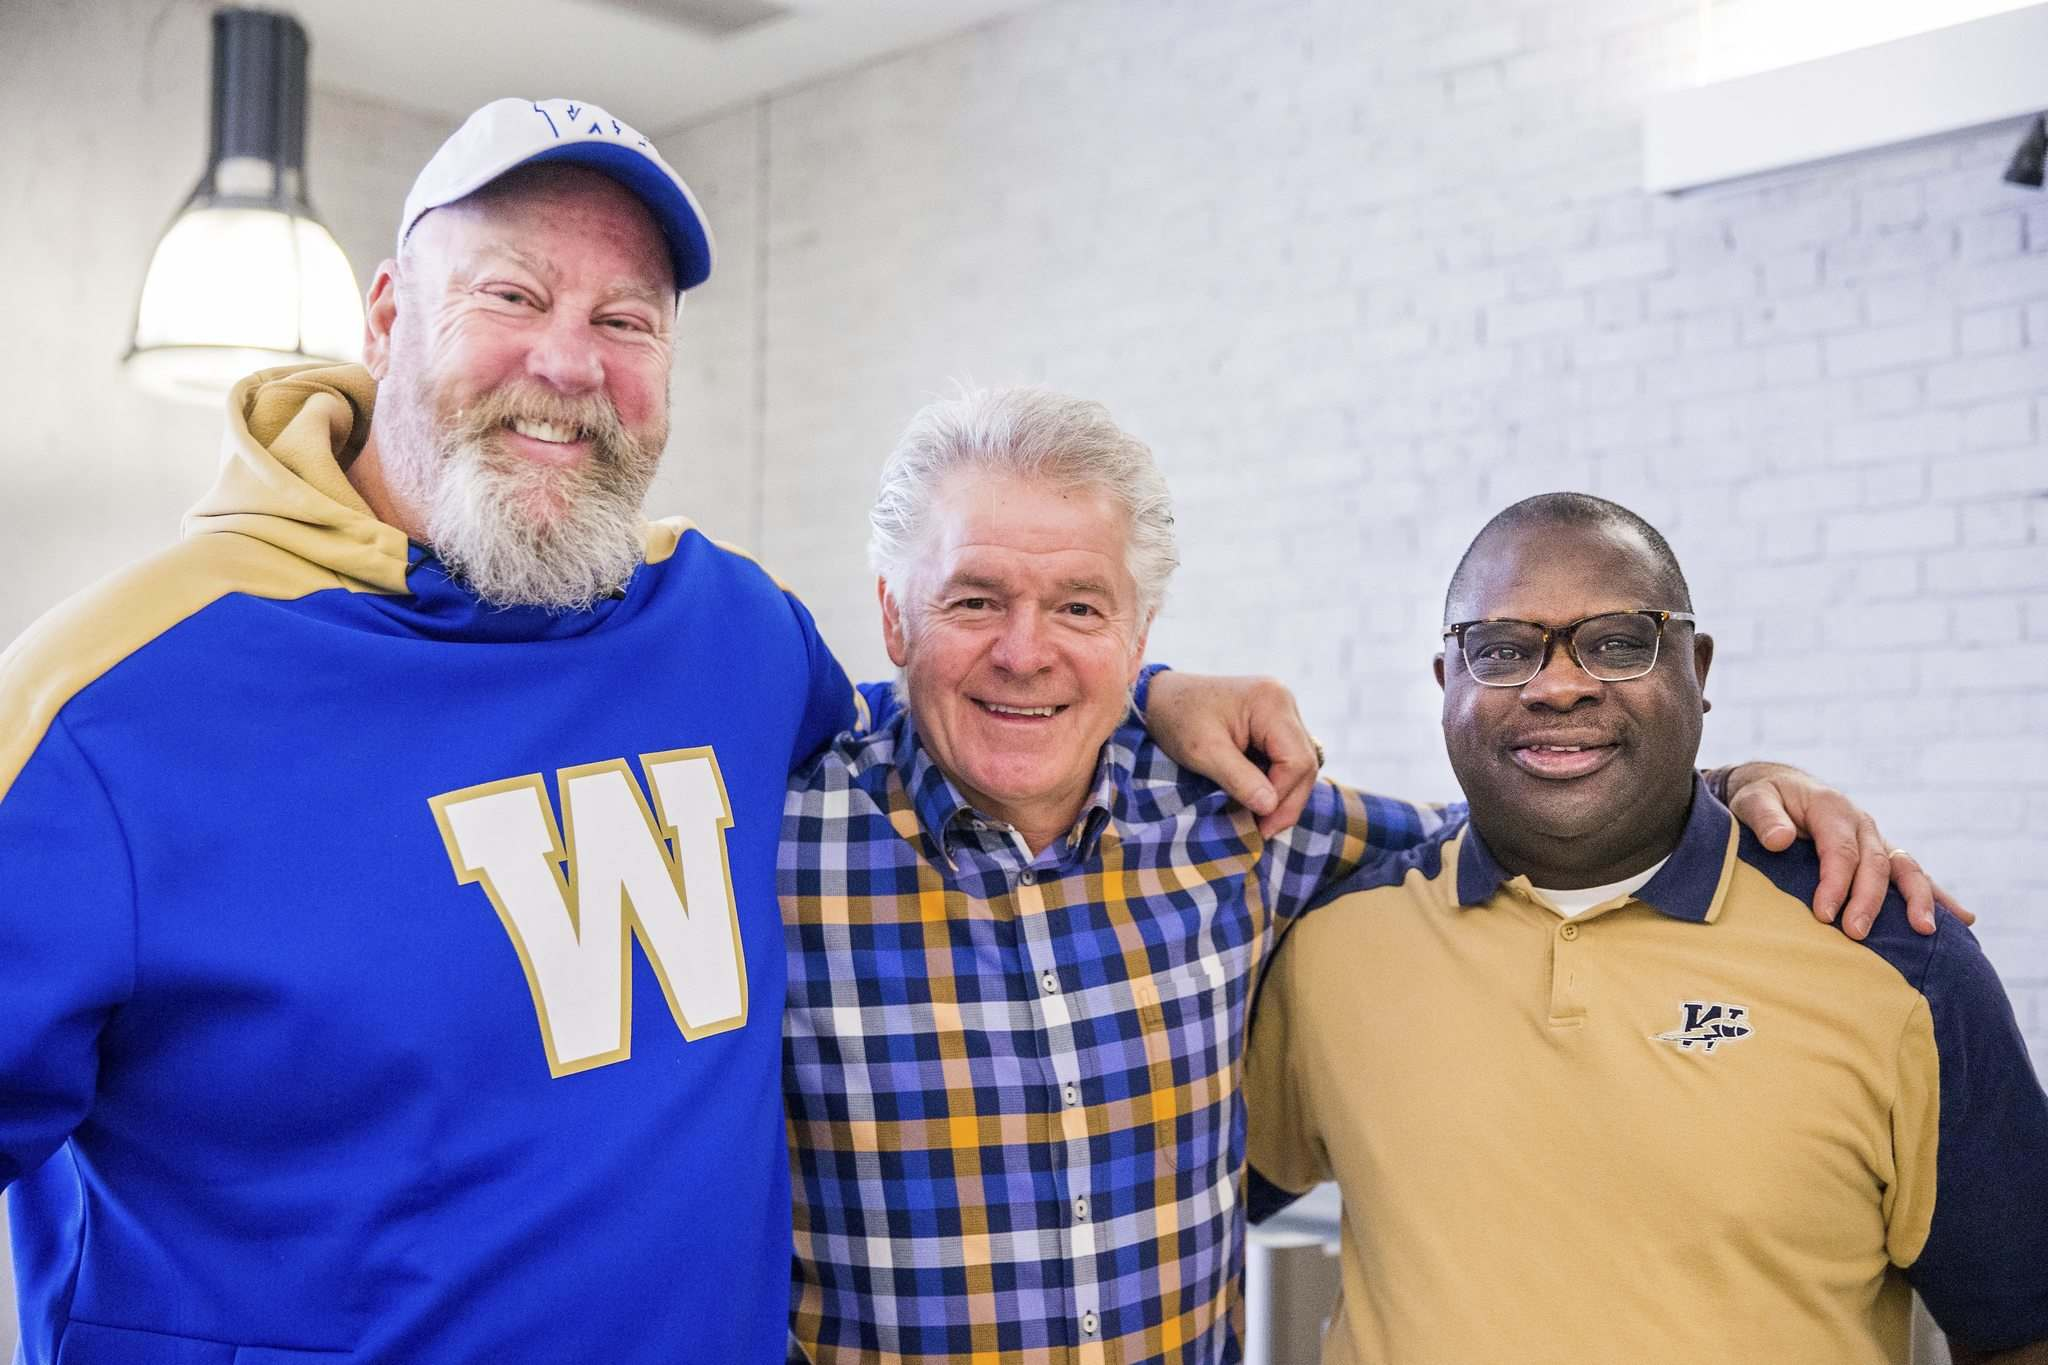 MIKAELA MACKENZIE / WINNIPEG FREE PRESS</p><p>Former Bombers (from left) Chris Walby, Joe Poplawski and James Murphy got together to discuss their playing days during an event at the Manitoba Sports Hall of Fame on Wednesday.</p>